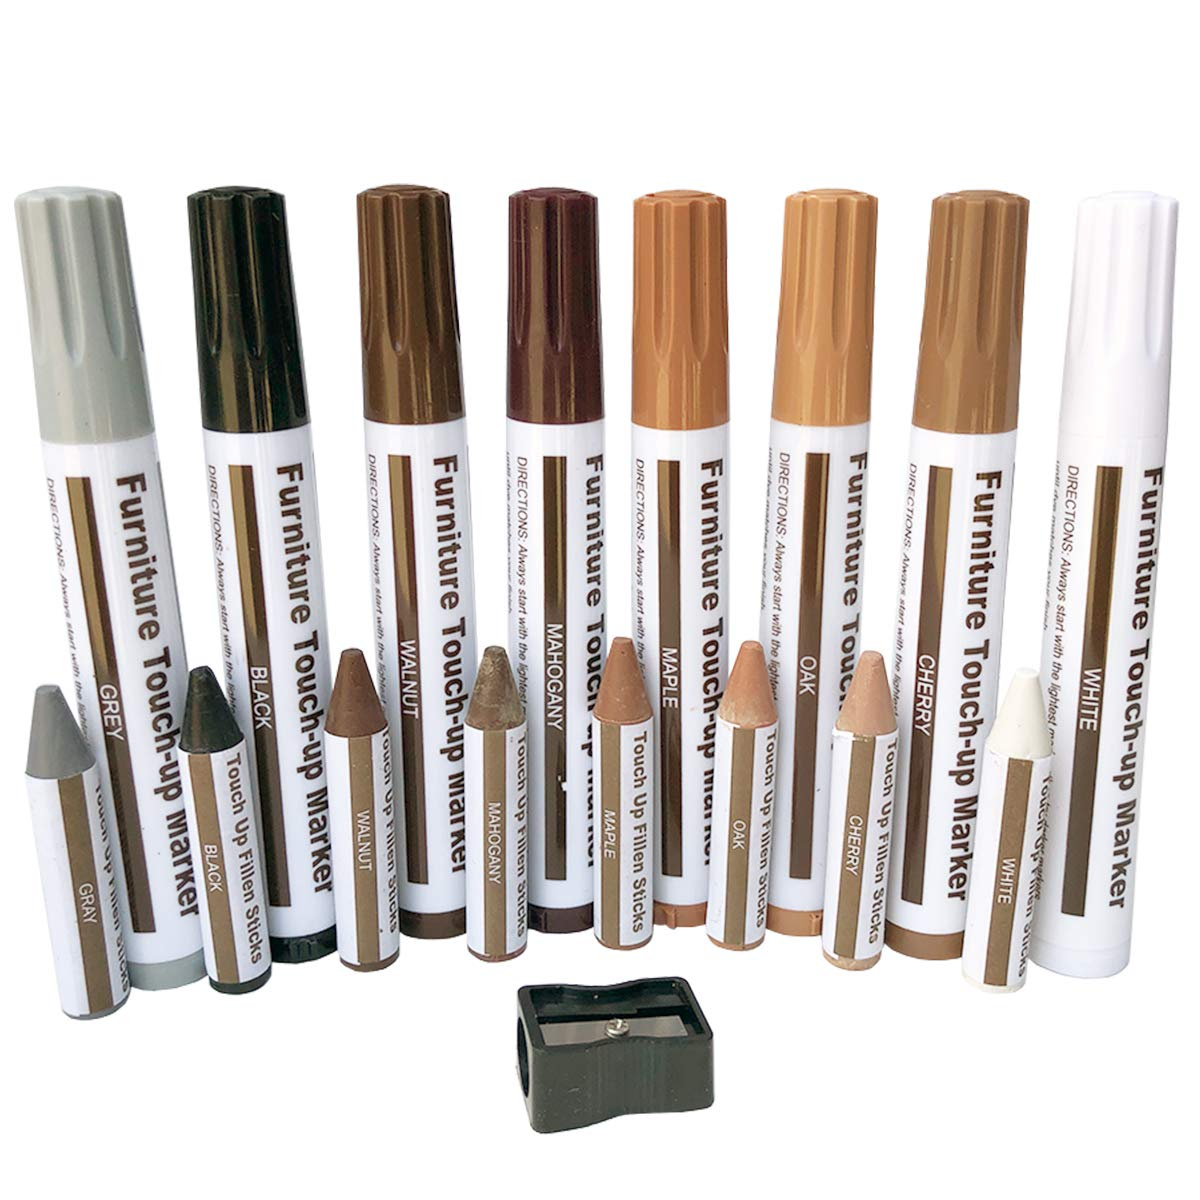 OupsTech Furniture Touch Up Markers White, 17-Pcs Furniture Repair Kit Wood Markers, Wood Furniture Repair, Furniture Repair Pen Set Maple, Oak, Cherry, Walnut, Grey, White, Black, Mahogany by OupsTech